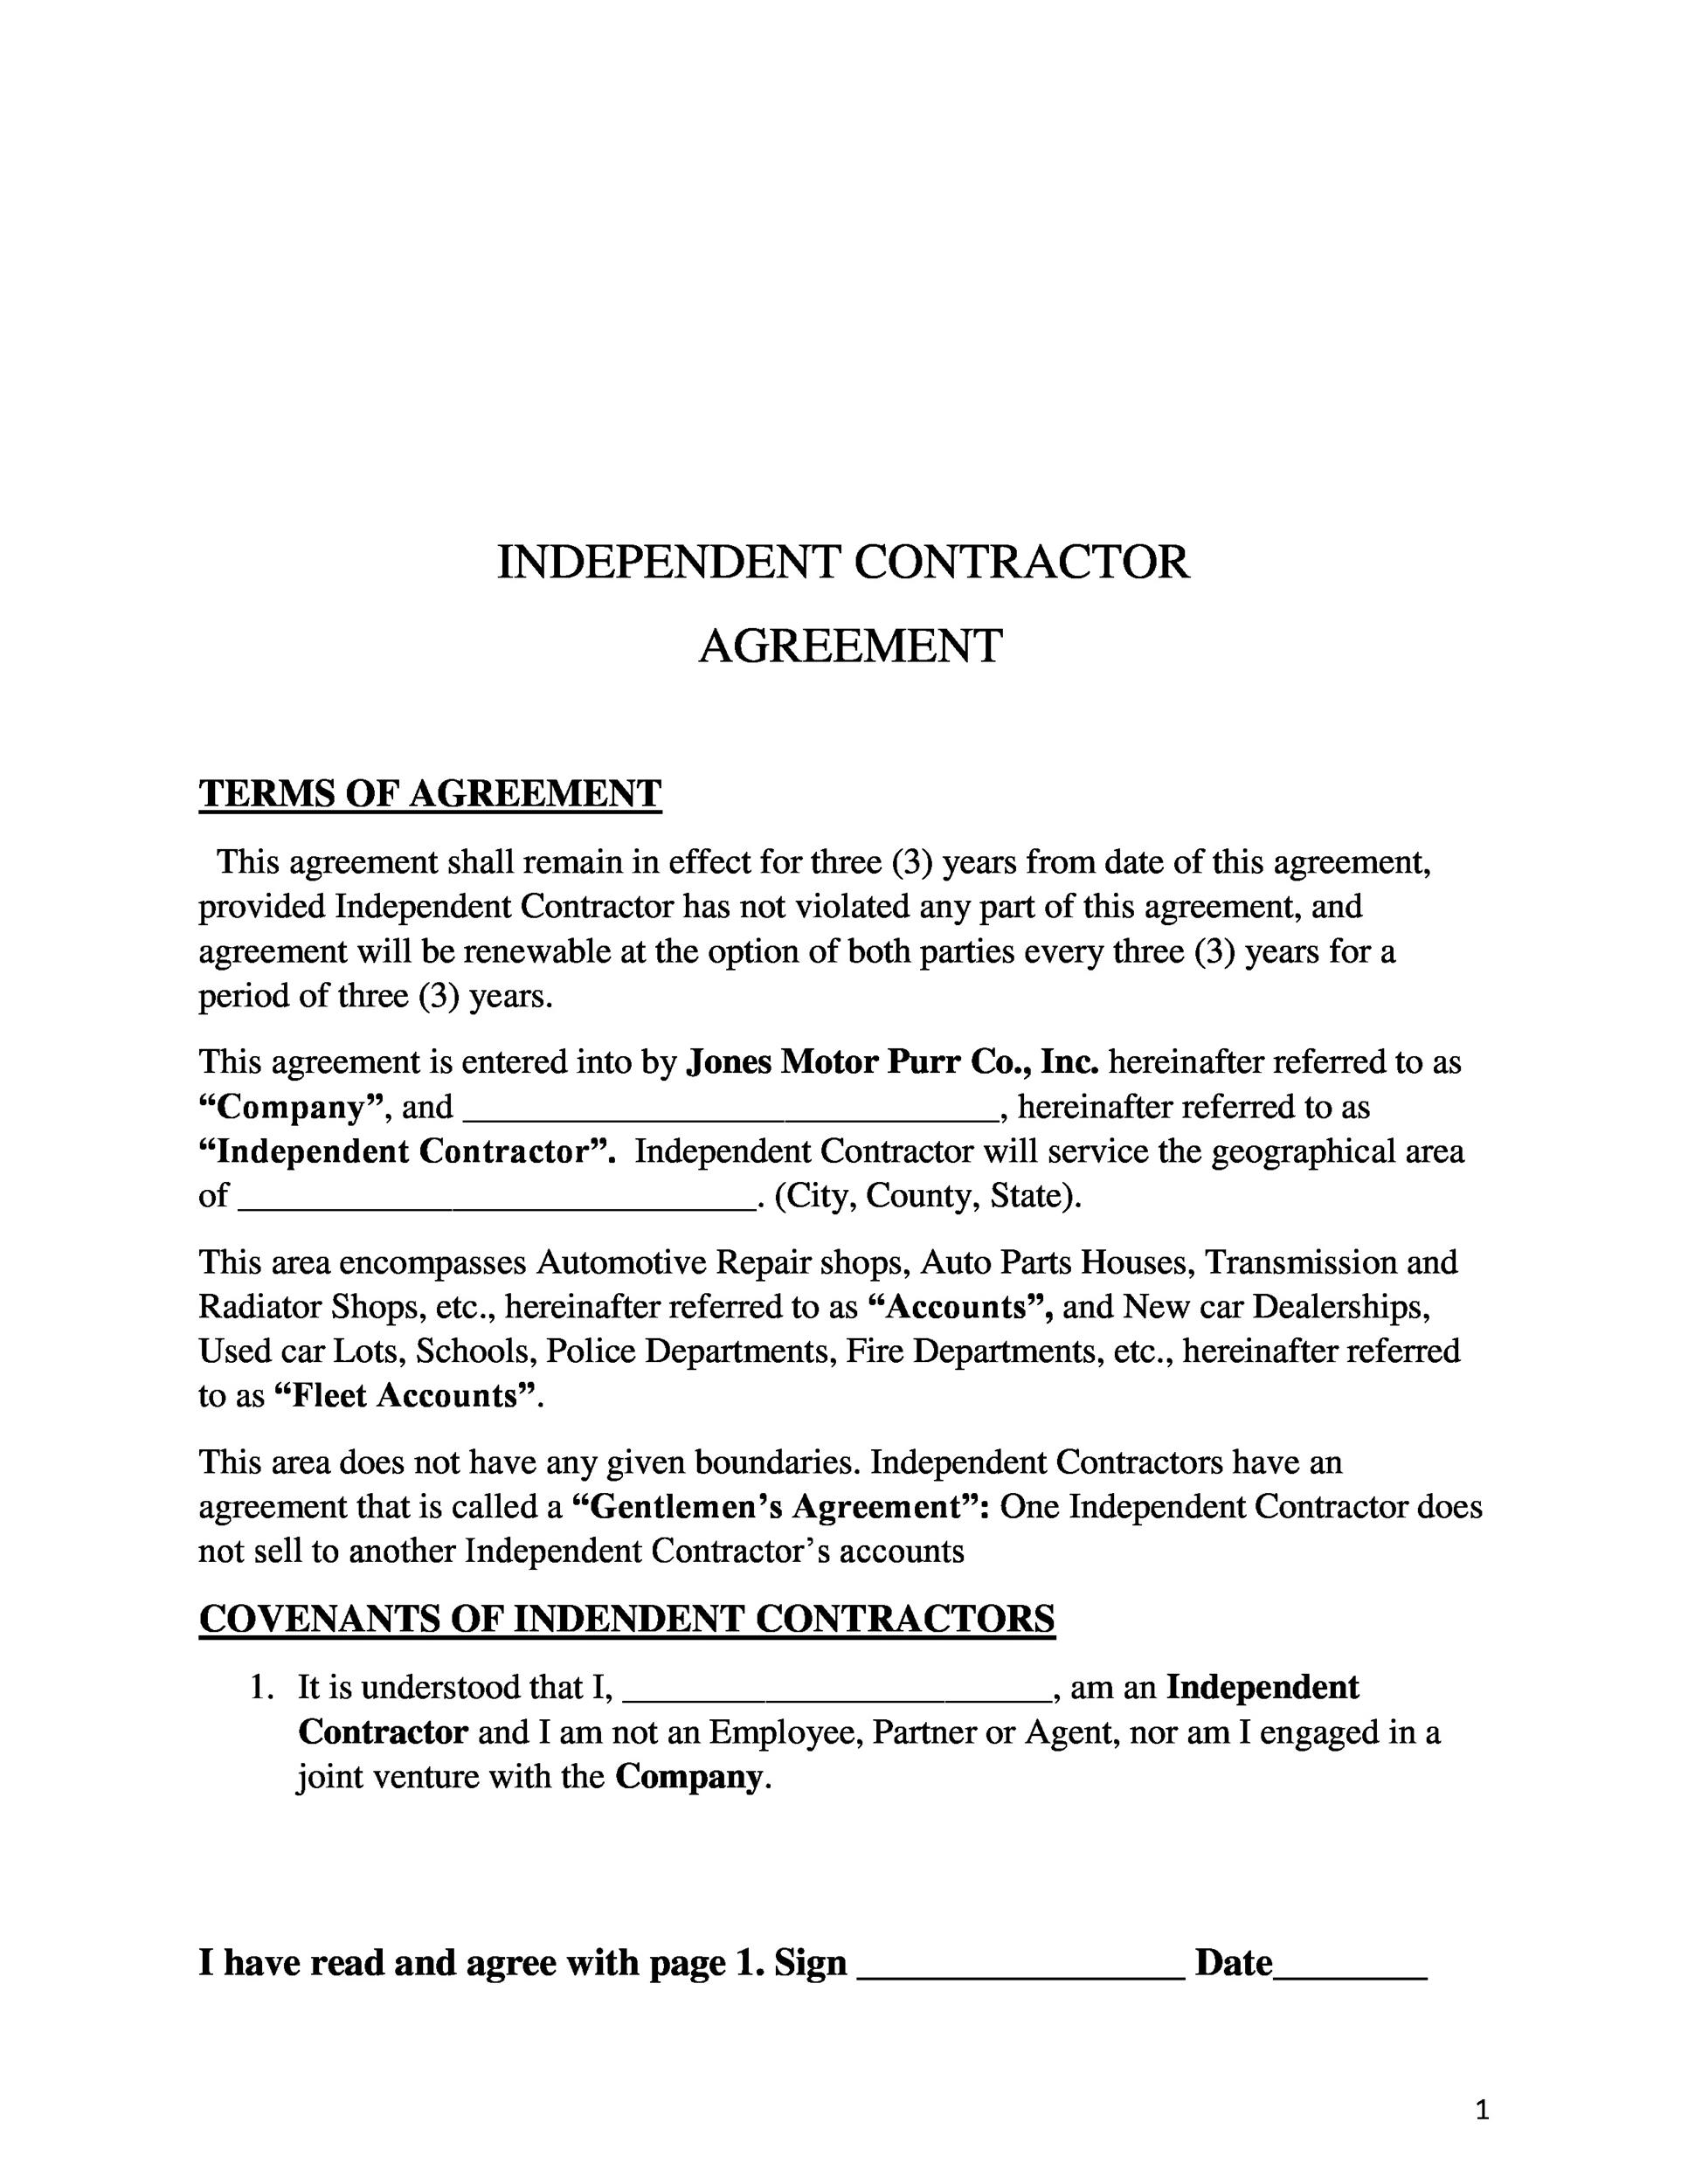 Free independent contractor agreement 35